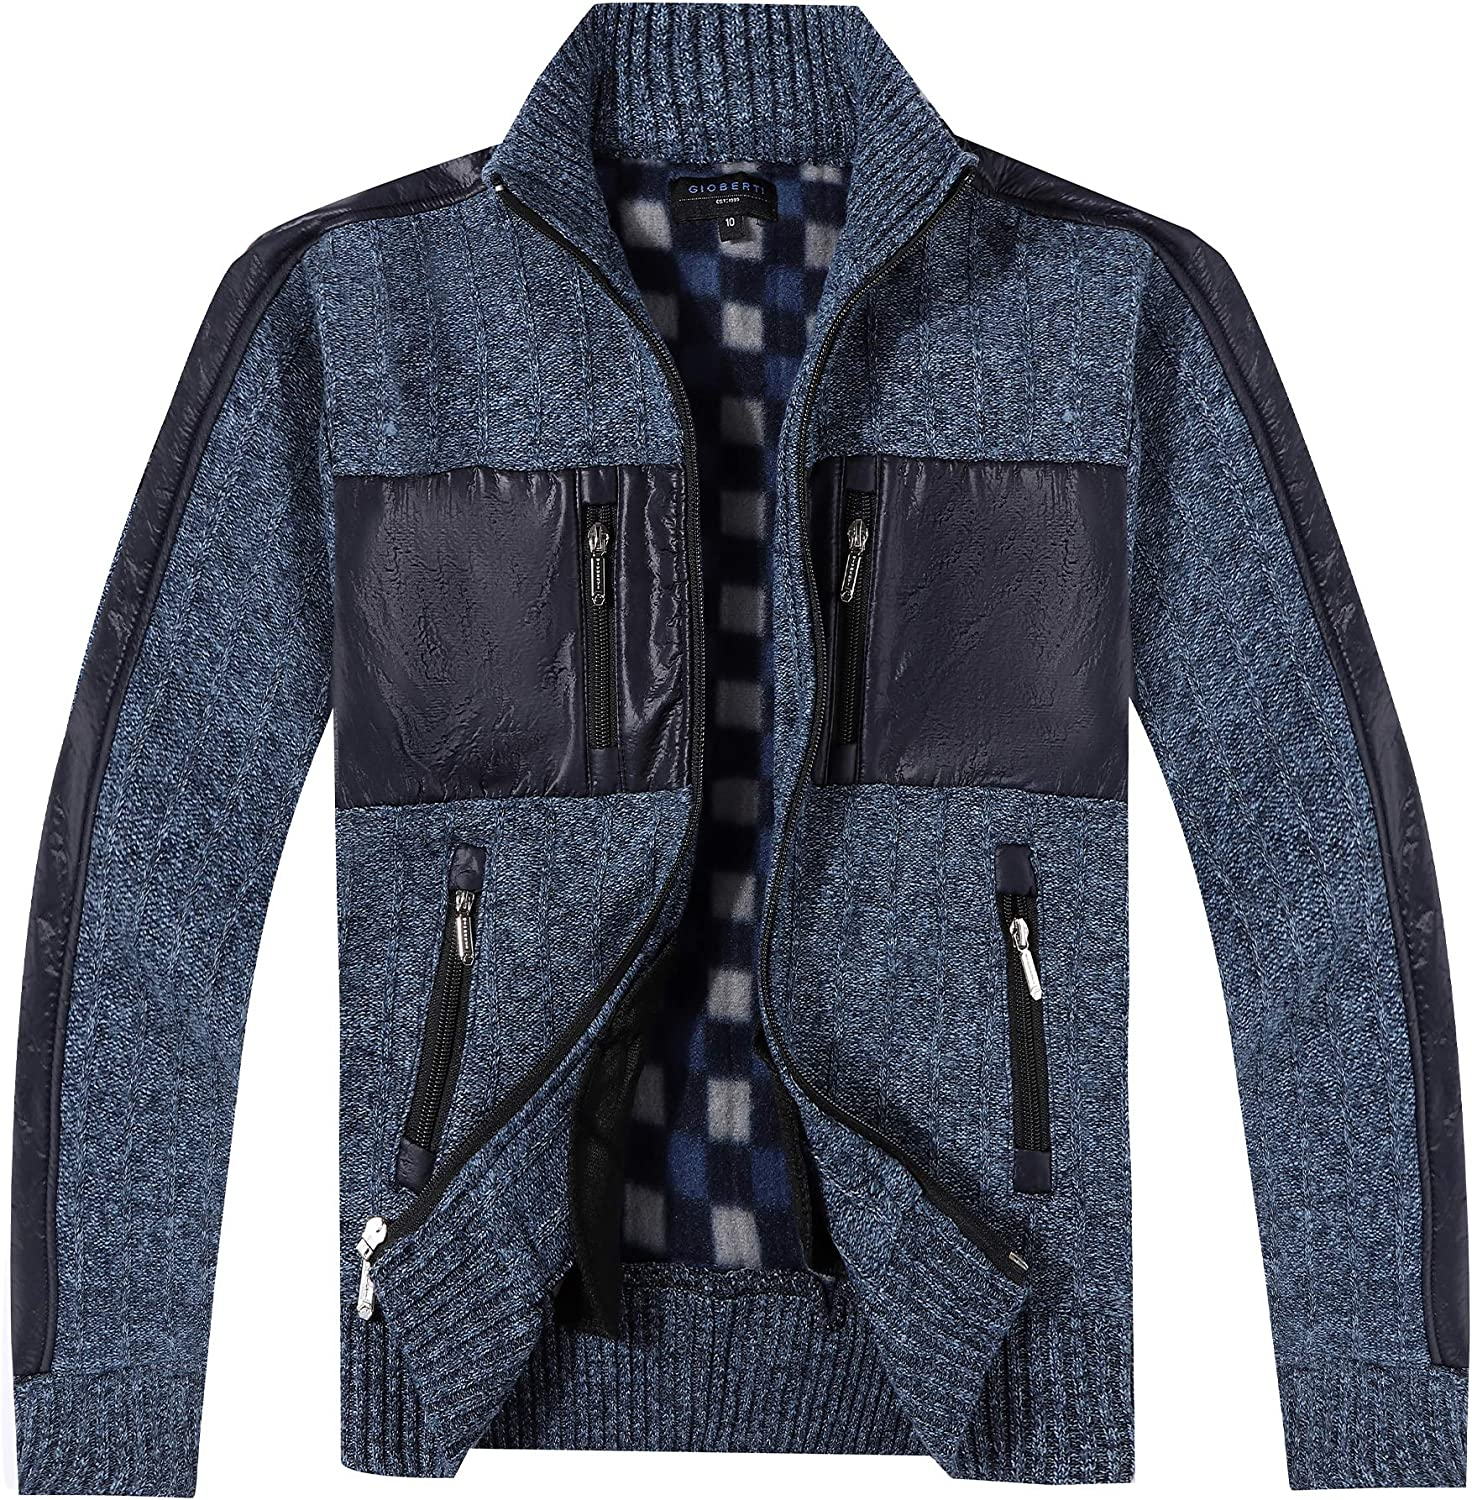 Gioberti Kids and Boys Full Zip Patch Design wi Excellence Cardigan Sweater Ultra-Cheap Deals